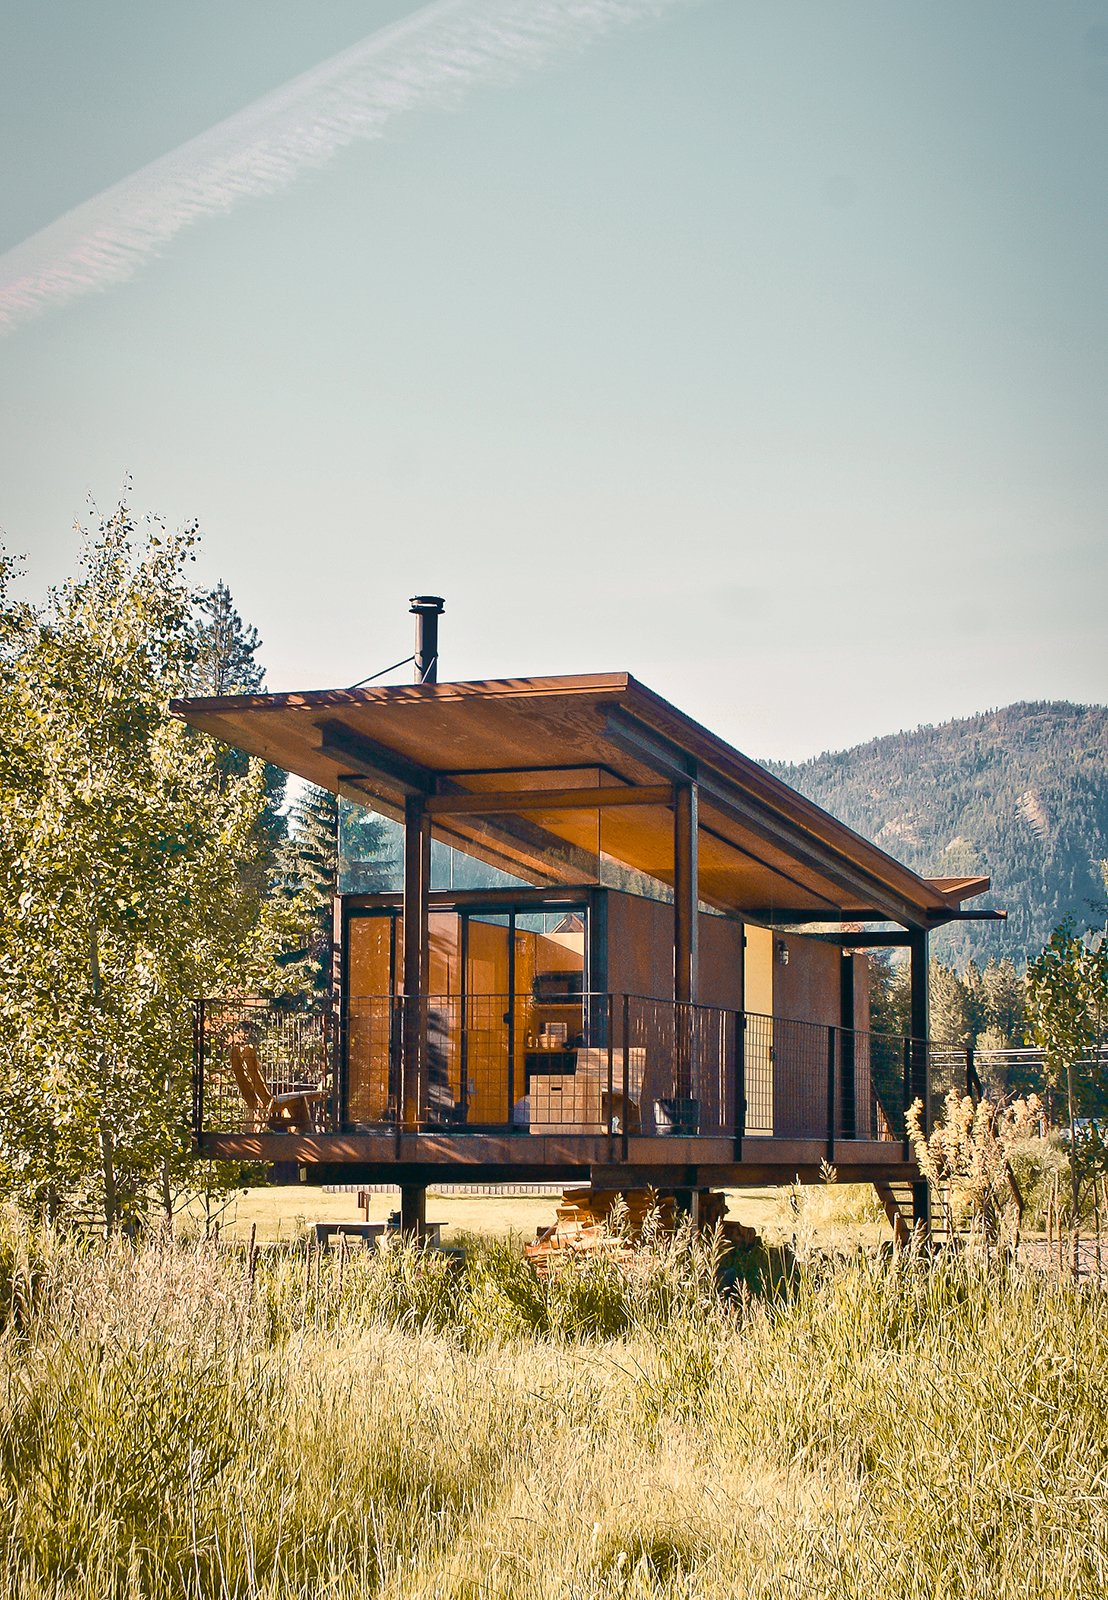 """Exterior, Cabin Building Type, Butterfly RoofLine, Metal Siding Material, Metal Roof Material, and Glass Siding Material The steel-clad Rolling Huts designed by Olson Kundig Architects in Manzama, Washington, sit lightly on the land thanks to wheels that allow the tiny residences to """"hover"""" above the site, optimizing views of the landscape. Photo by Derek Pirozzi.  Photo 83 of 101 in 101 Best Modern Cabins from Olson Kundig Houses"""